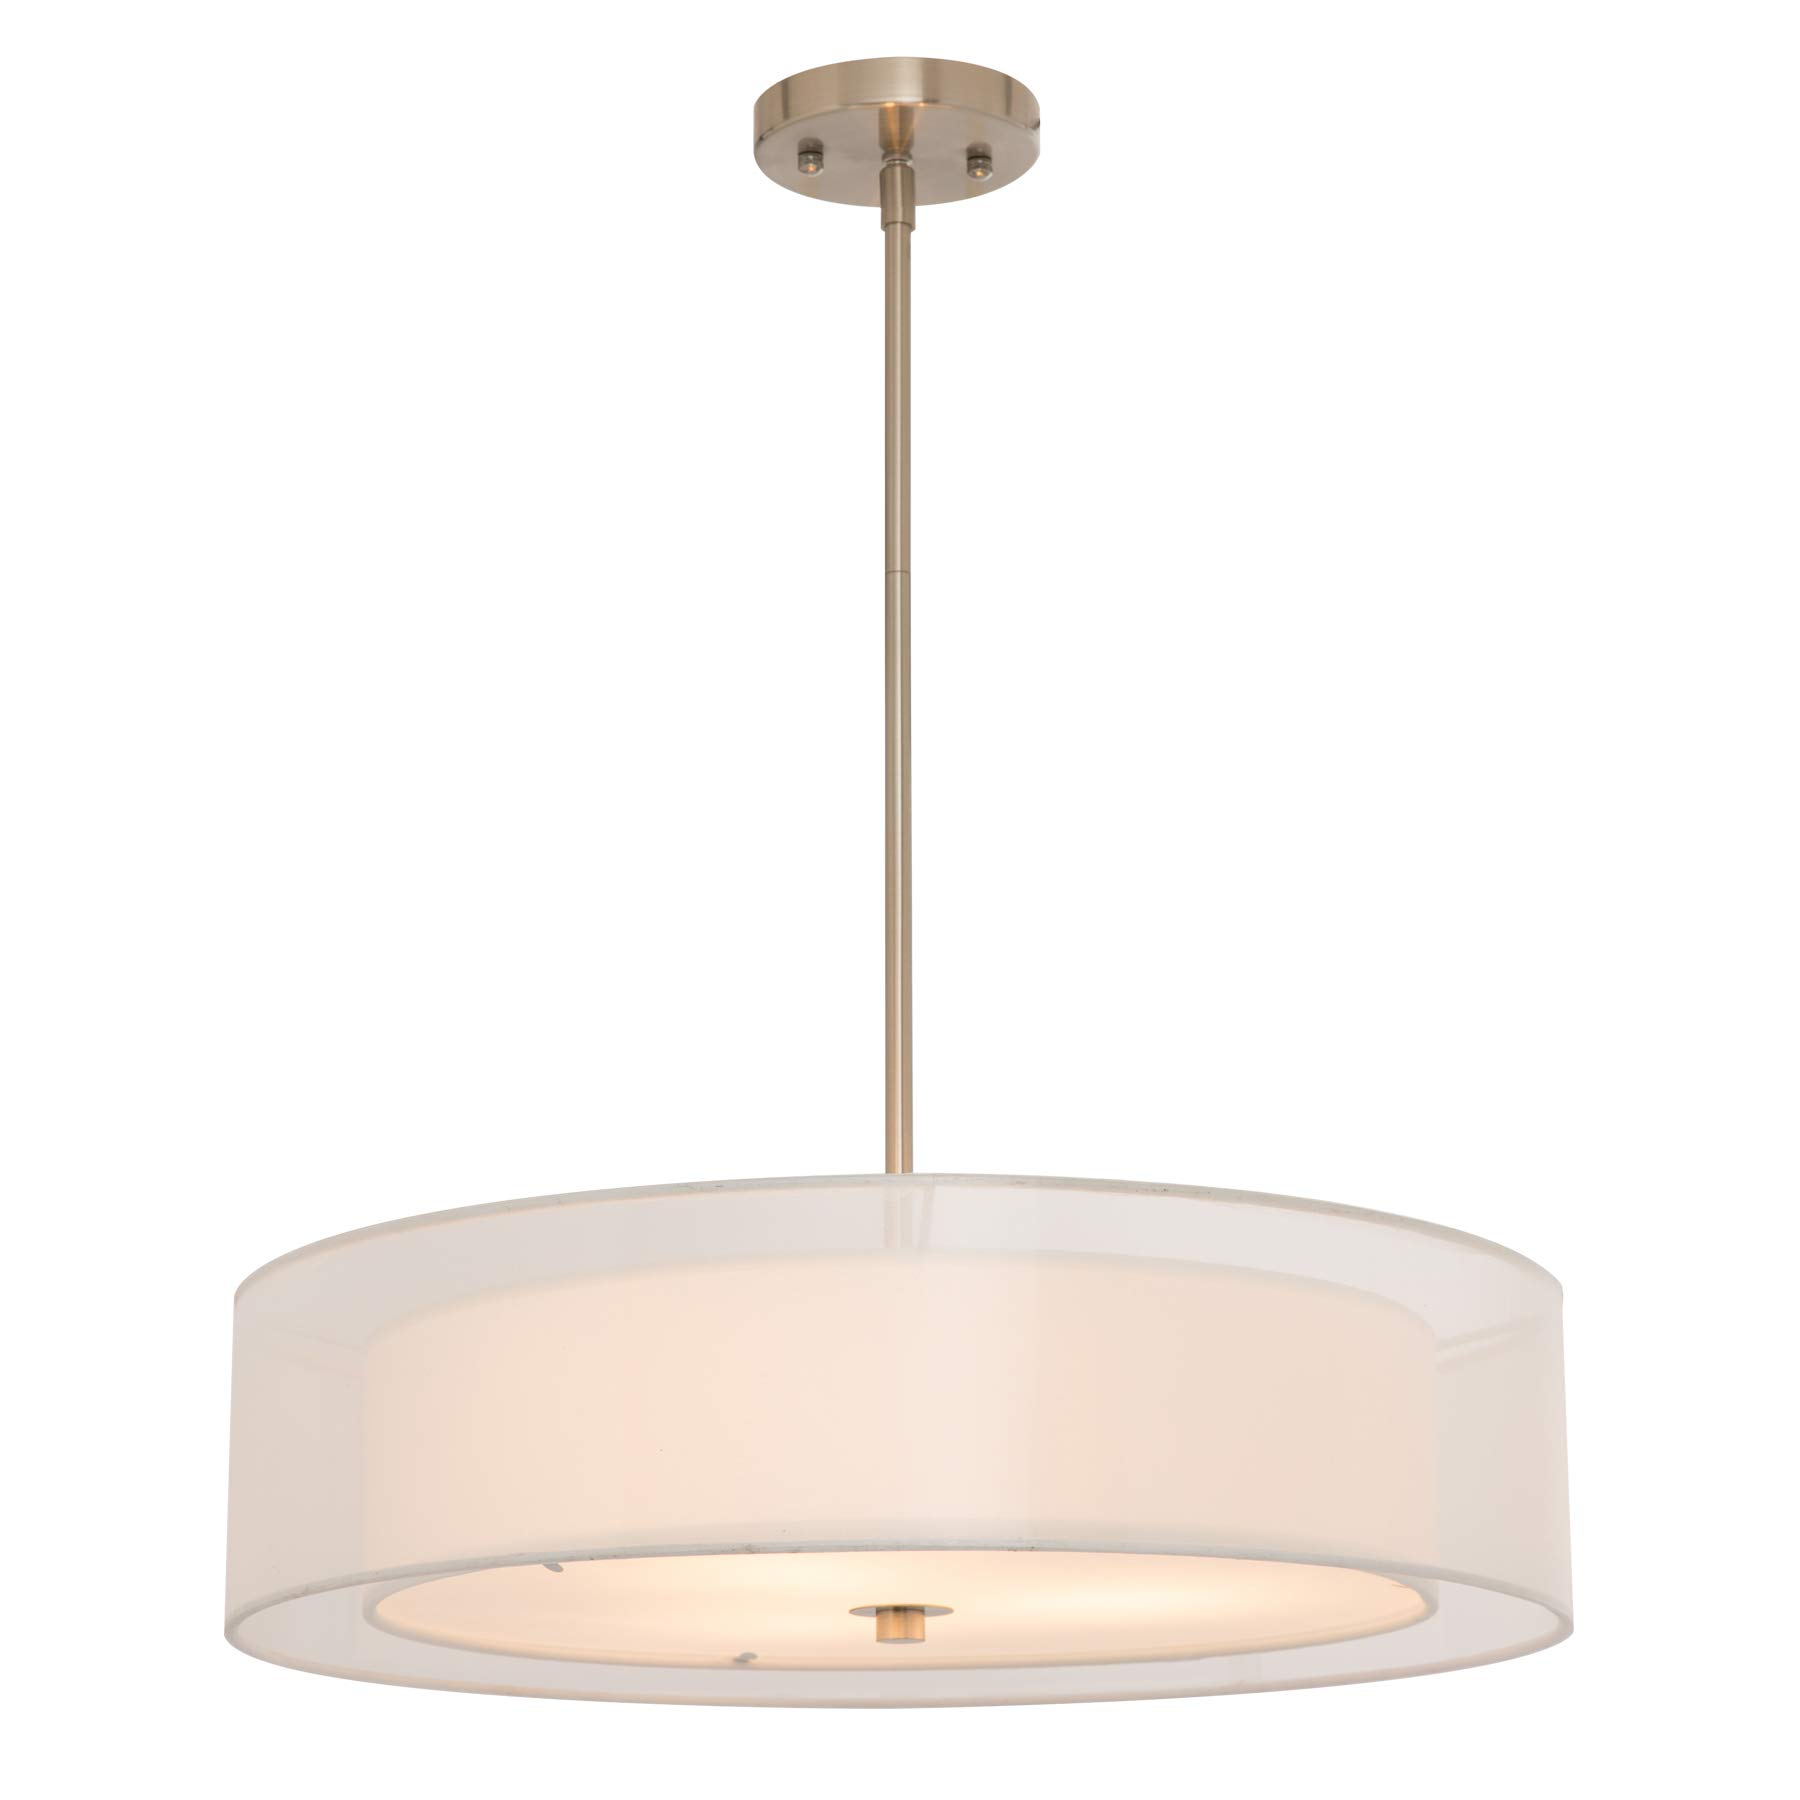 CO-Z 3 Light Brushed Nickel Double Drum Pendant Chandelier, Convertible Semi-Flush Mount Drum Ceiling Lighting Fixture with Fabric Shades and Diffuser for Kitchen Island Dining Room Table Bedroom Bar